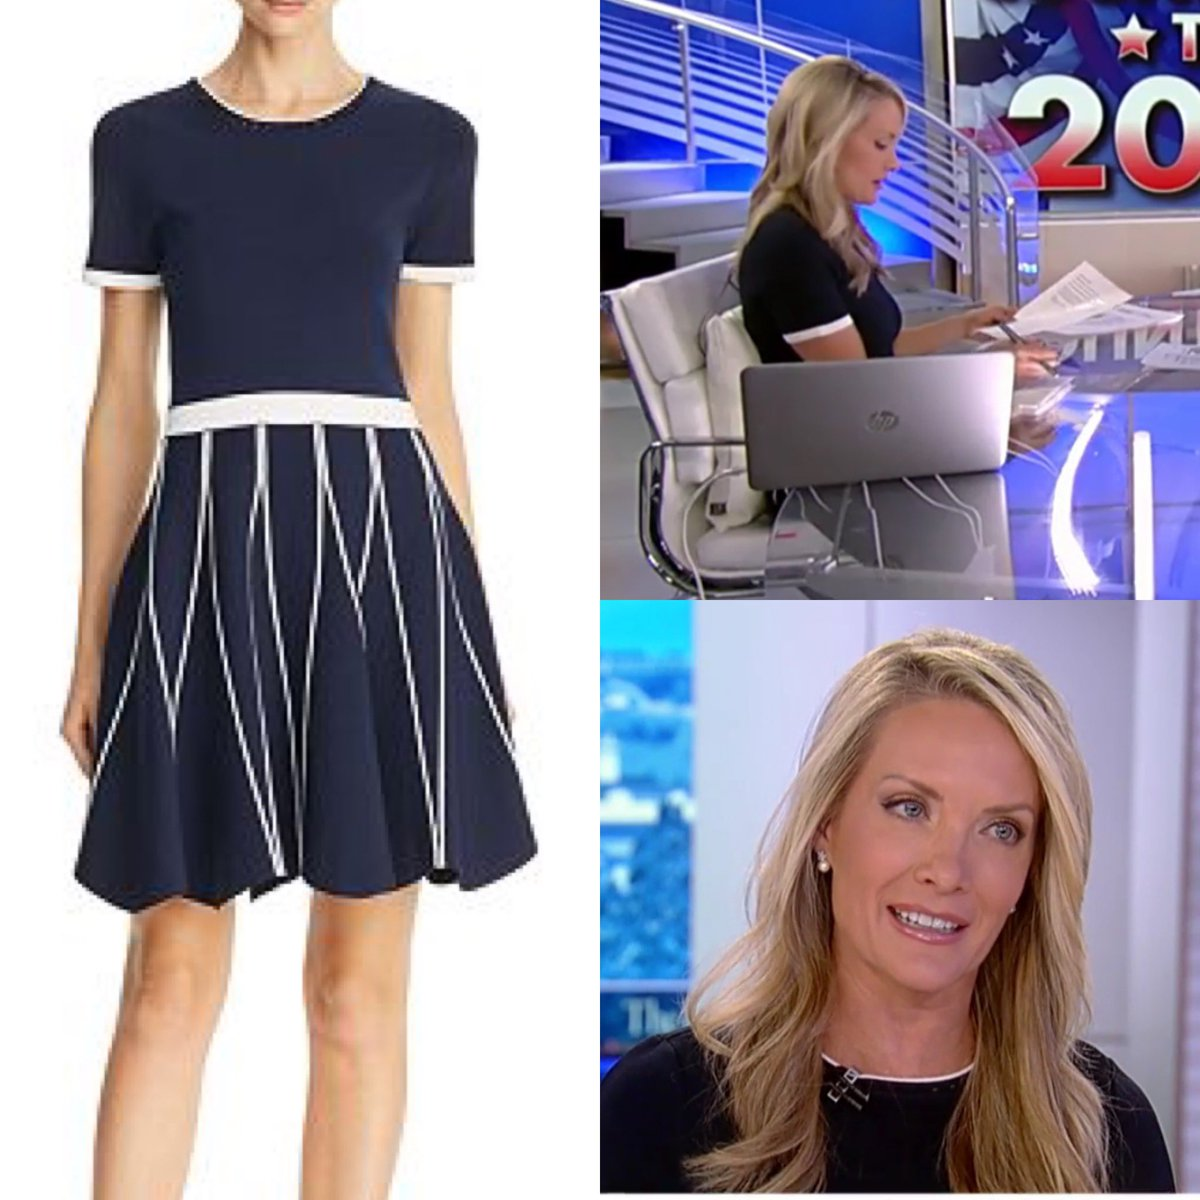 Dana Perino wore a Shoshanna 'Tinsley' Knit Dress with Pink Piping today on #TheDailyBriefing - the dress is on sale via Amazon.  #danaperino #foxnews #foxnewsfashion pic.twitter.com/lWkW0PiRlK